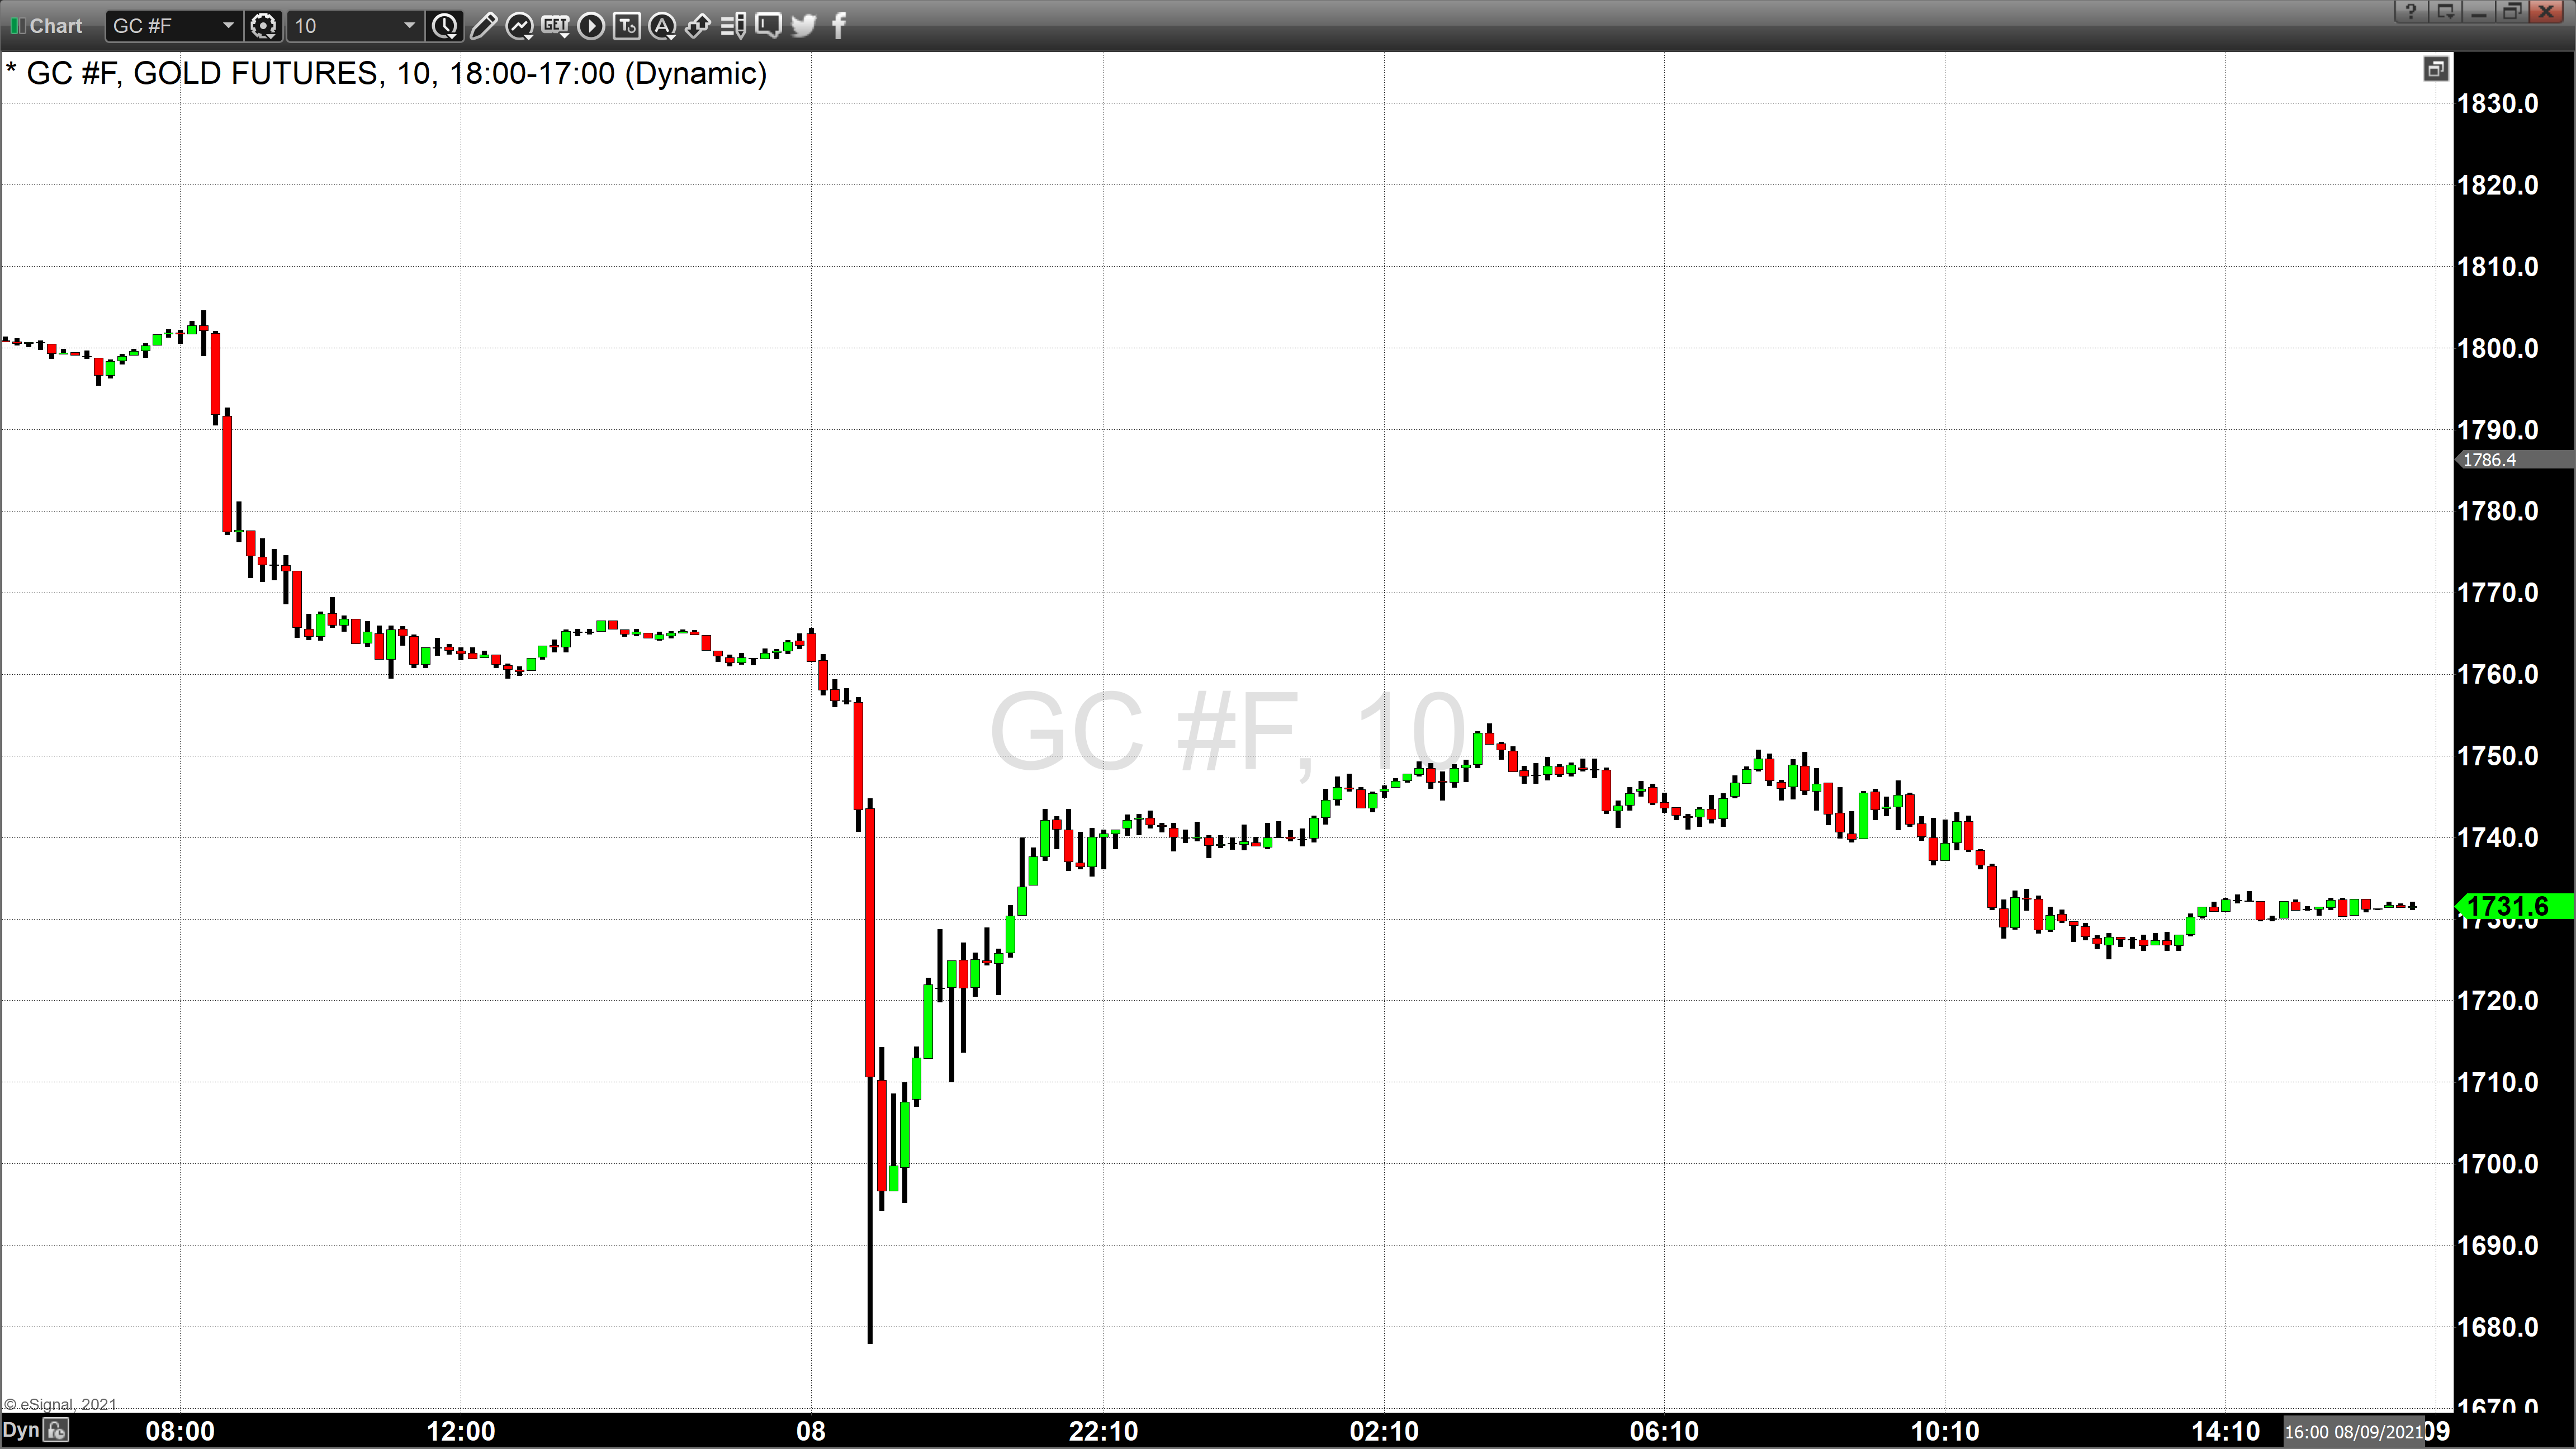 gold 10 minute chart August 9